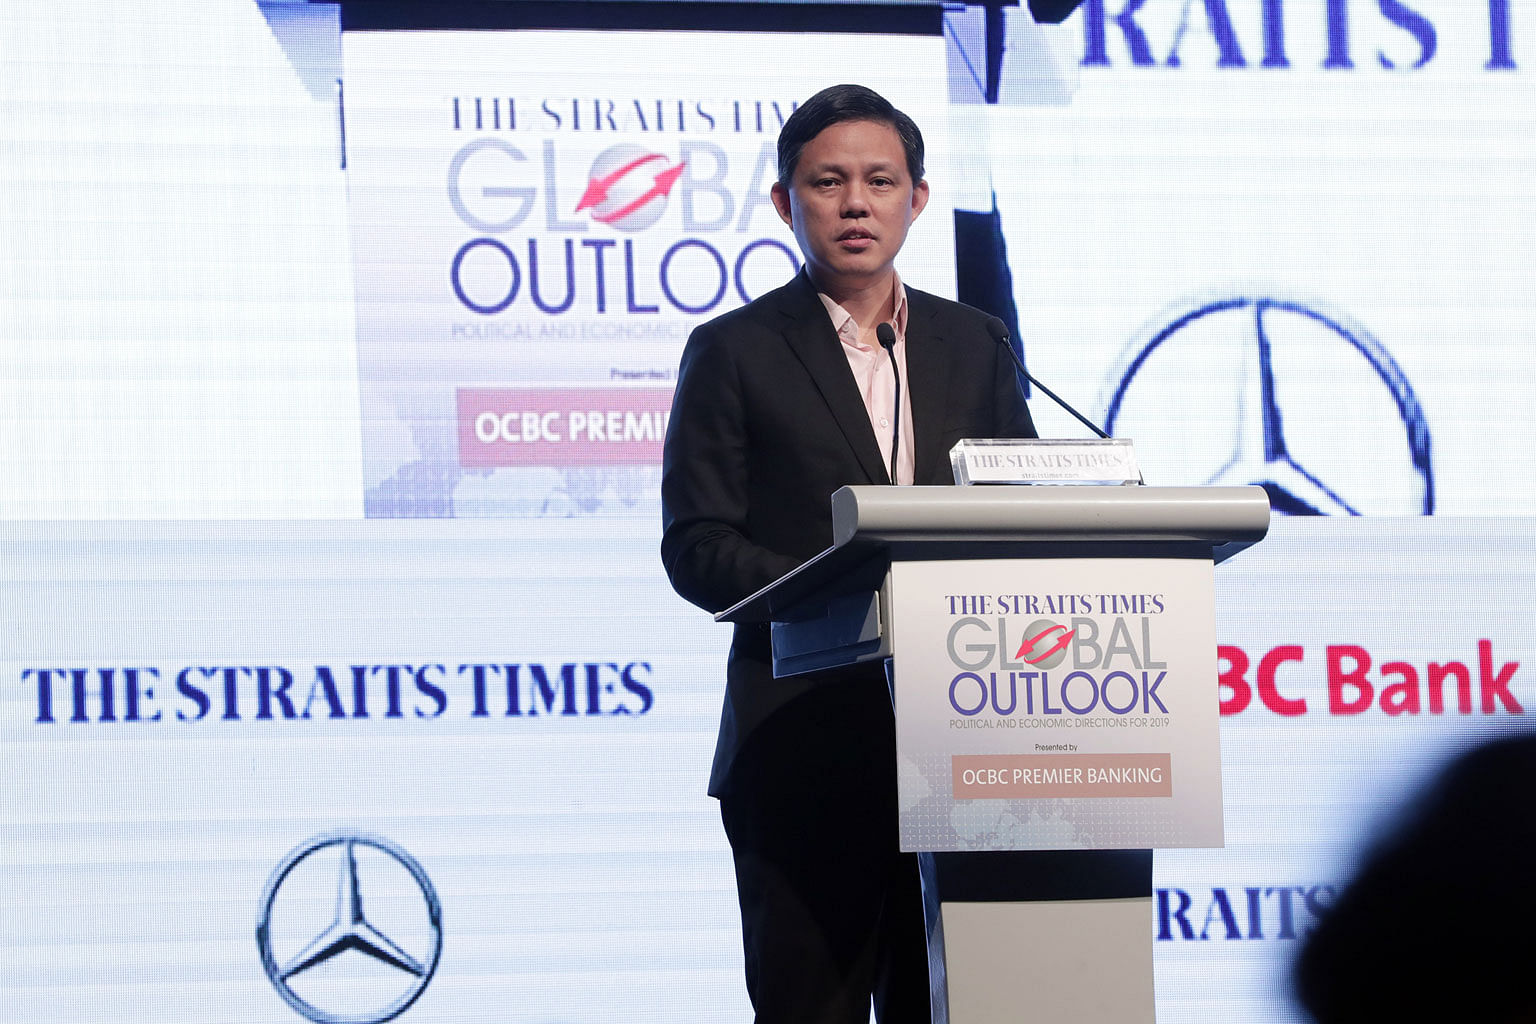 Trade and Industry Minister Chan Chun Sing giving the keynote address at The Straits Times Global Outlook Forum held at Raffles City Convention Centre yesterday. He says globalisation will bring forth its fair share of challenges and opportunities, a